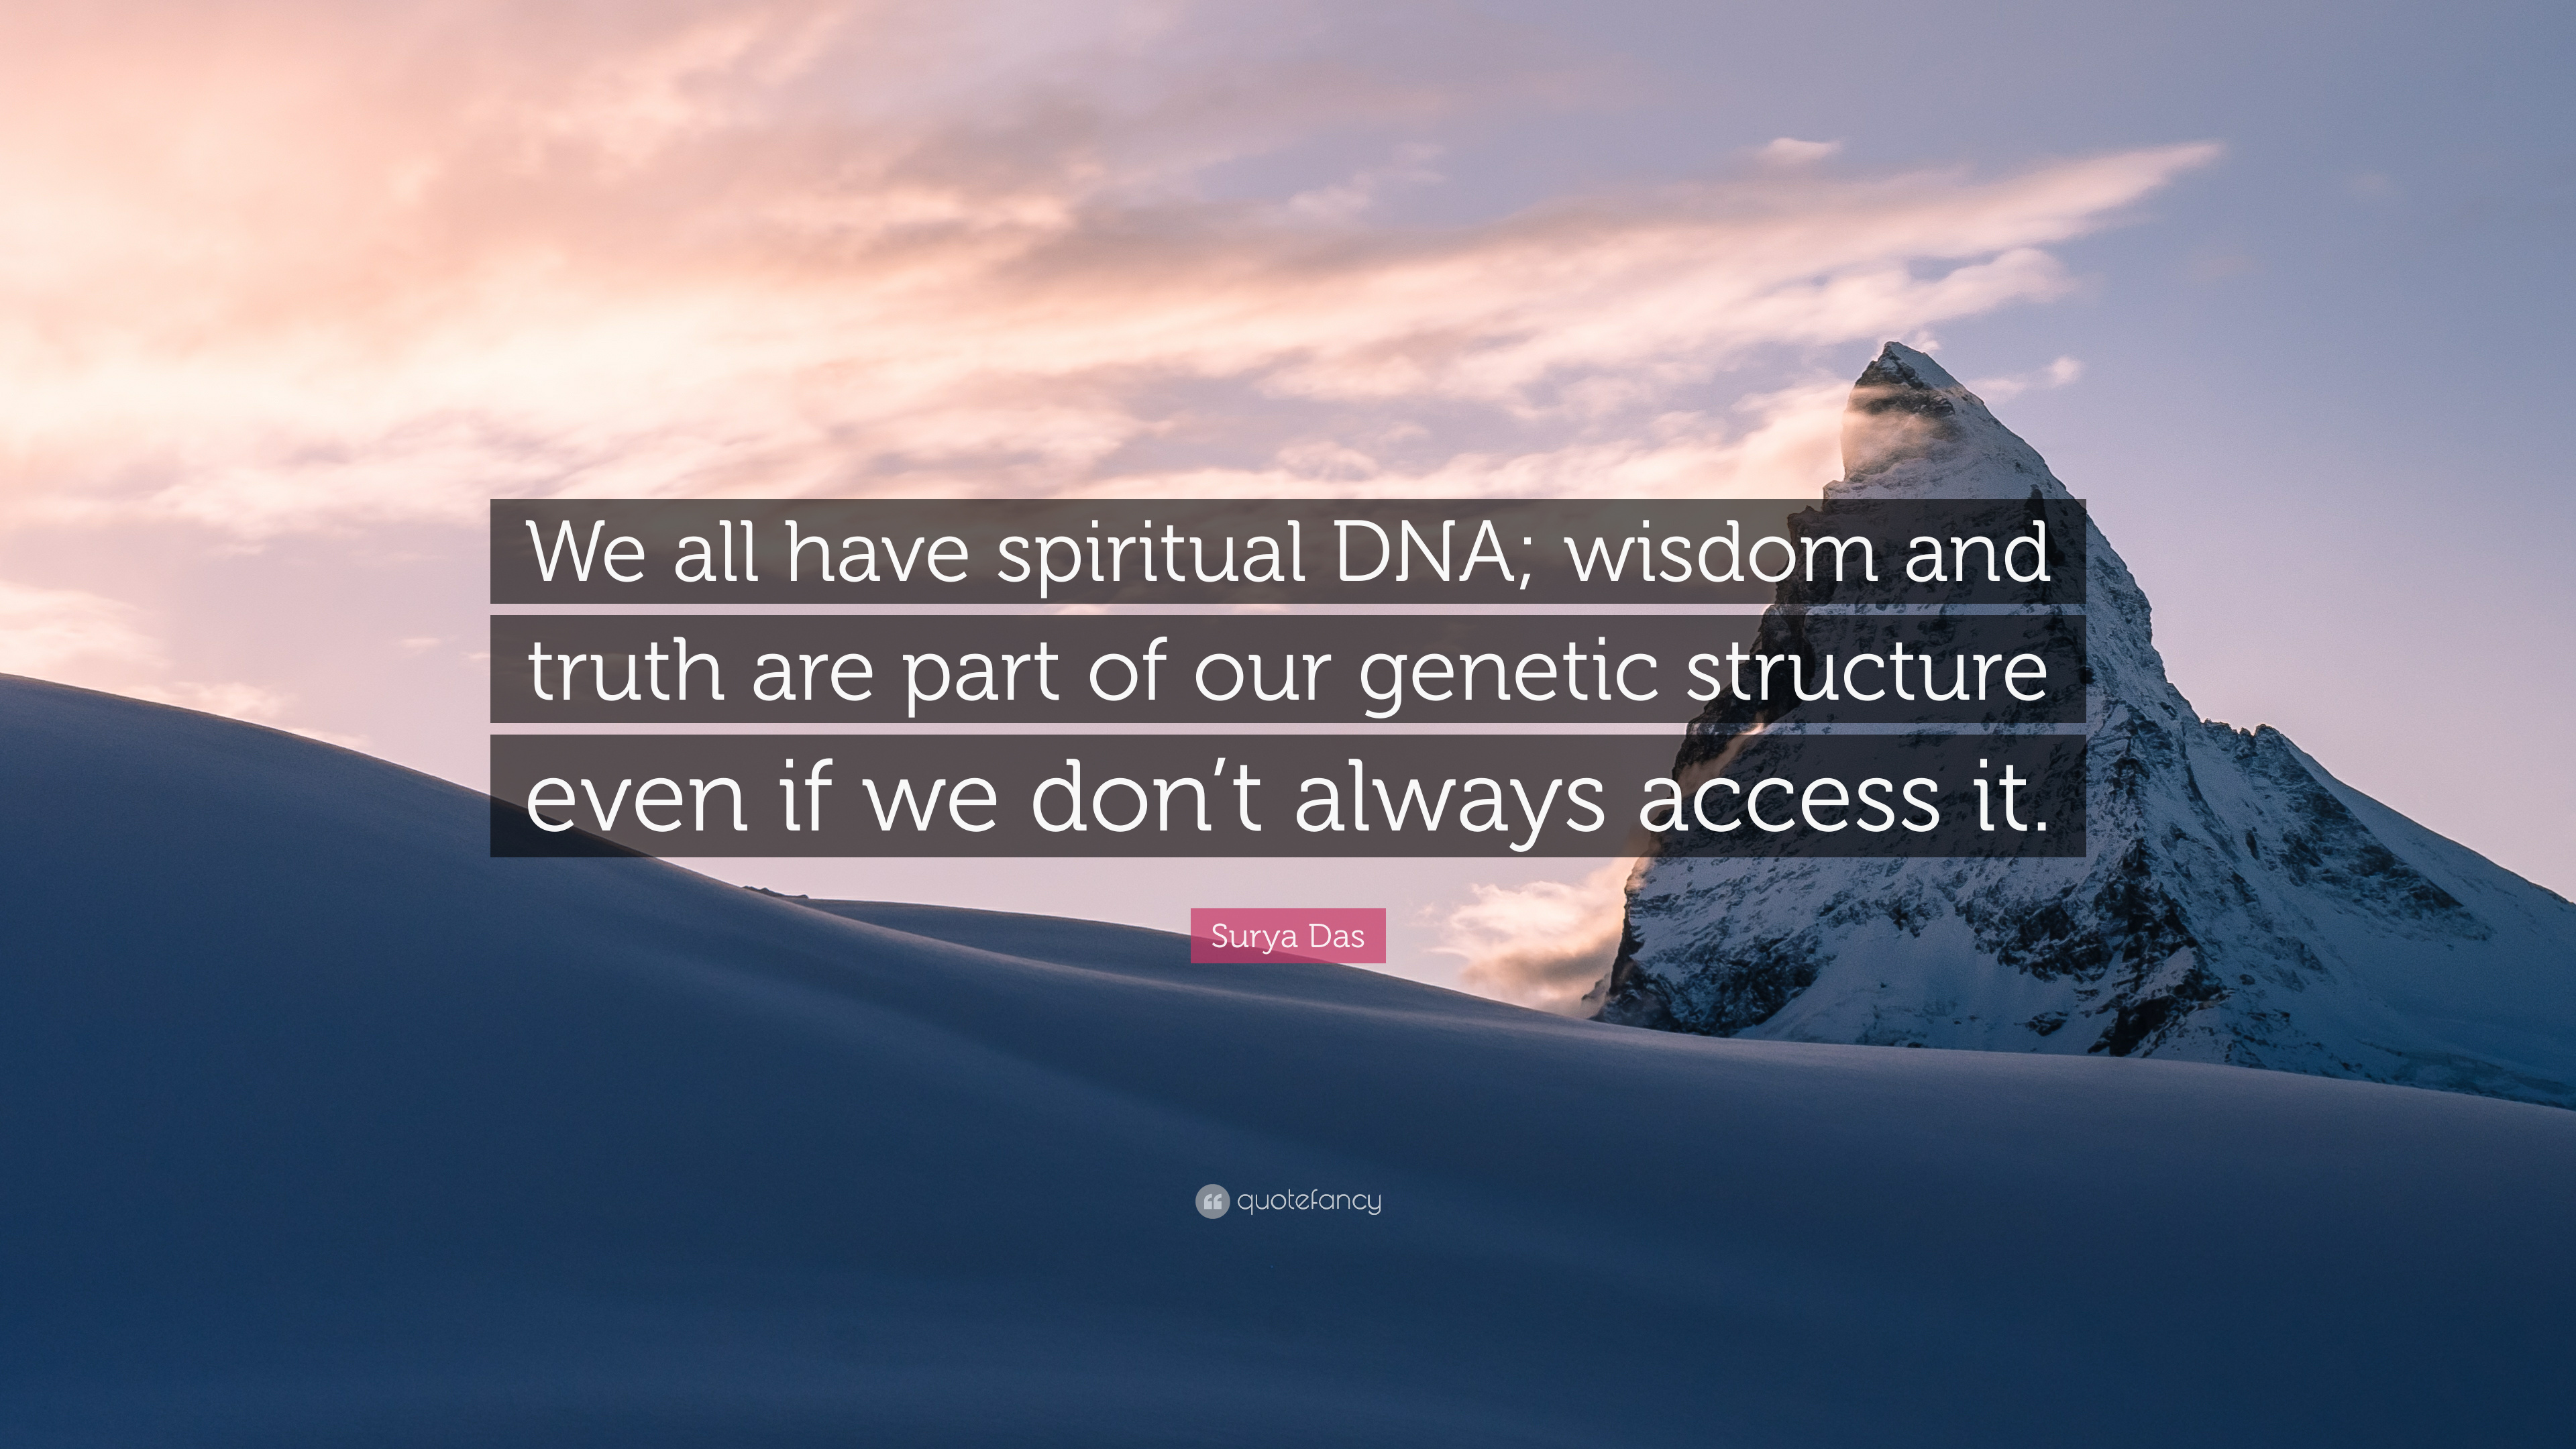 Dna Quotes And Sayings: Surya Das Quotes (36 Wallpapers)